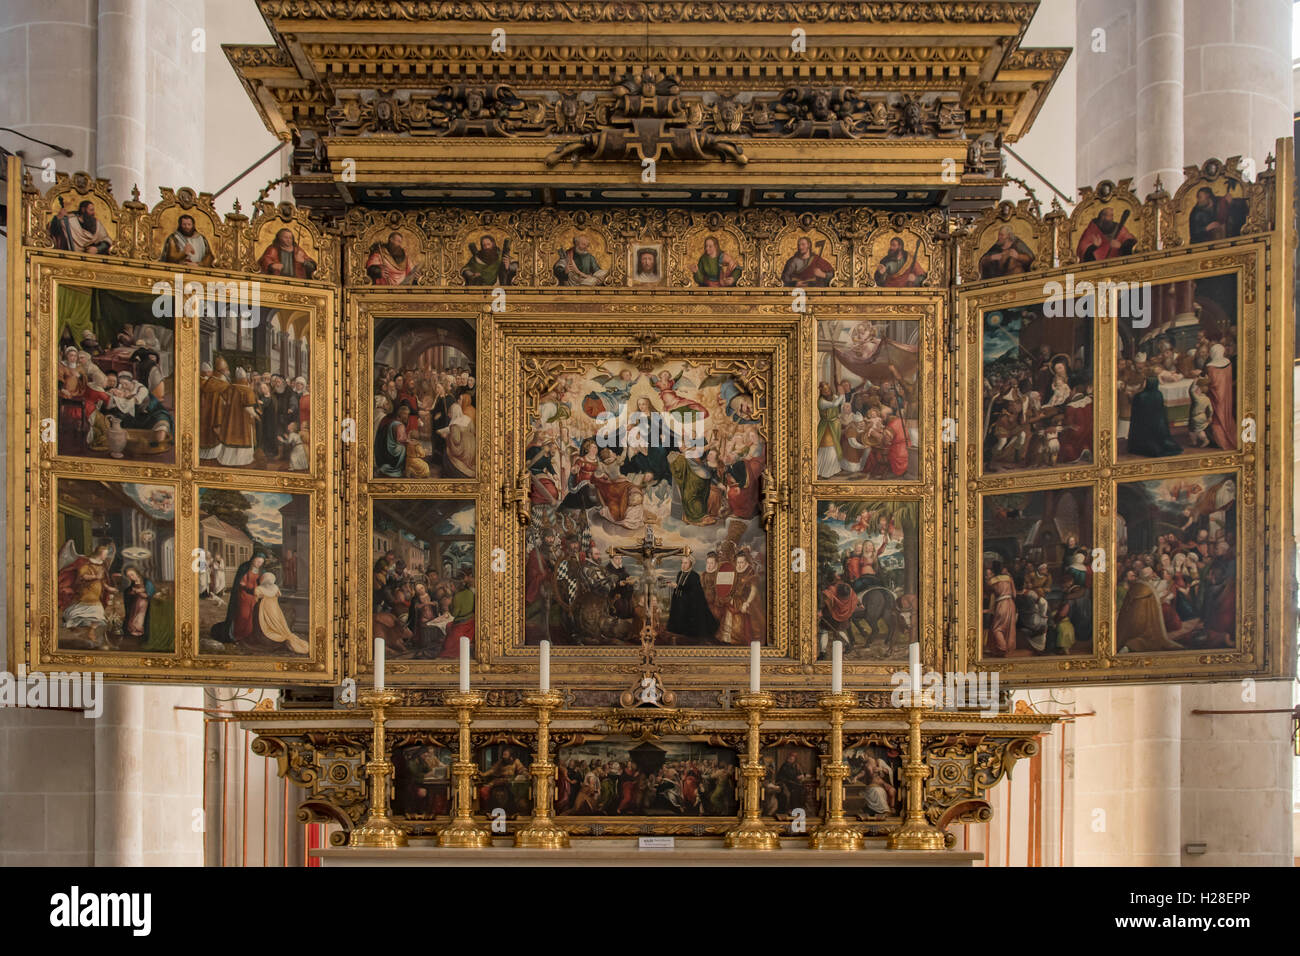 Triptych and Altar in Frauenmunster, Ingolstadt, Germany Stock Photo